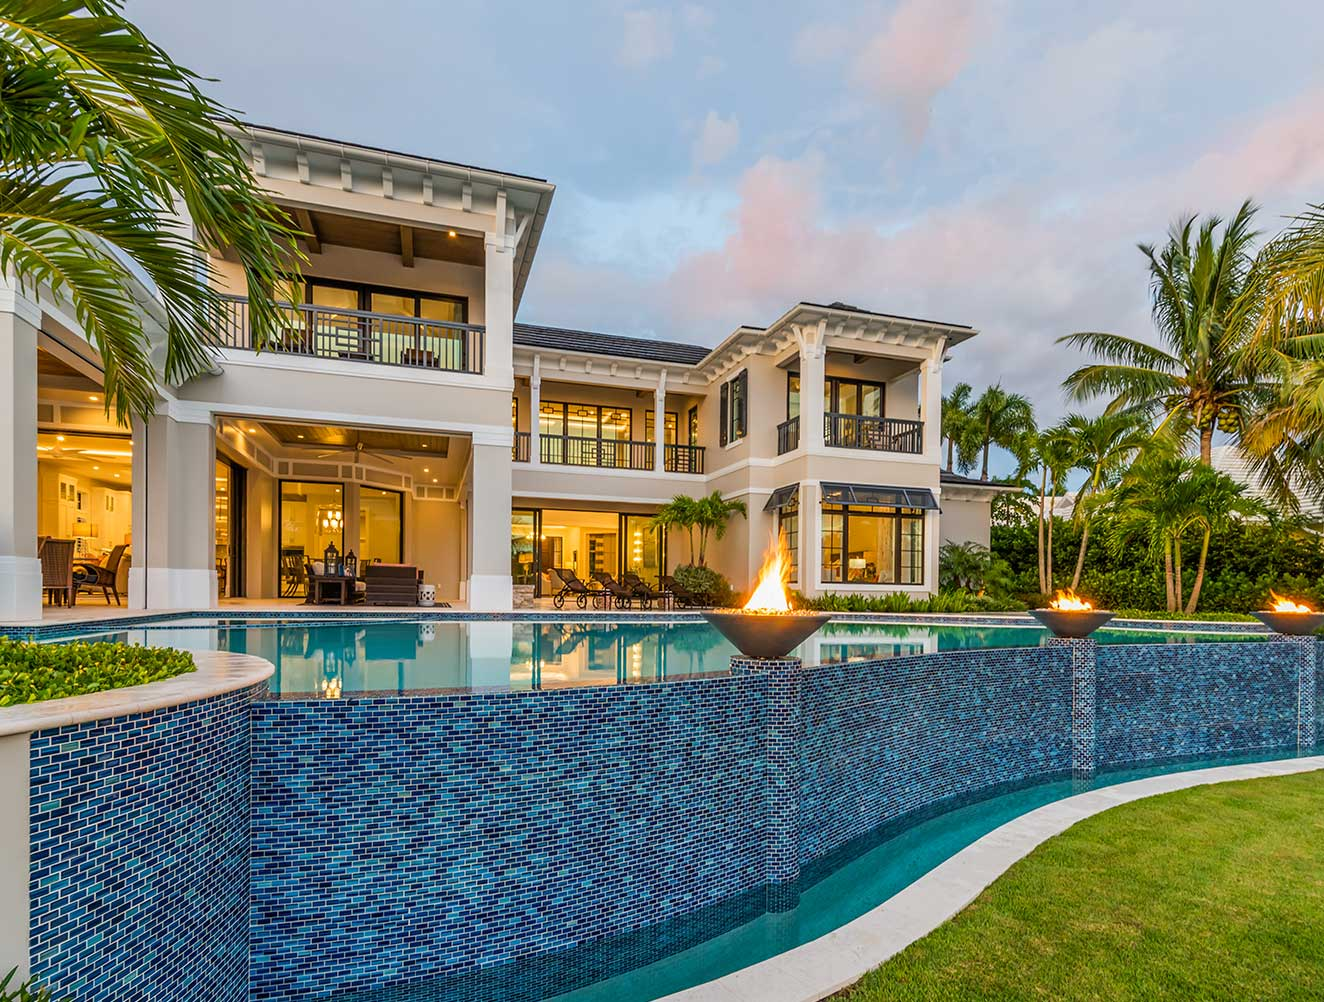 Infinity pool details of Fort Charles Estate in Naples Florida, single family home designed by Kukk Architecture & Design Naples Architecture Firm